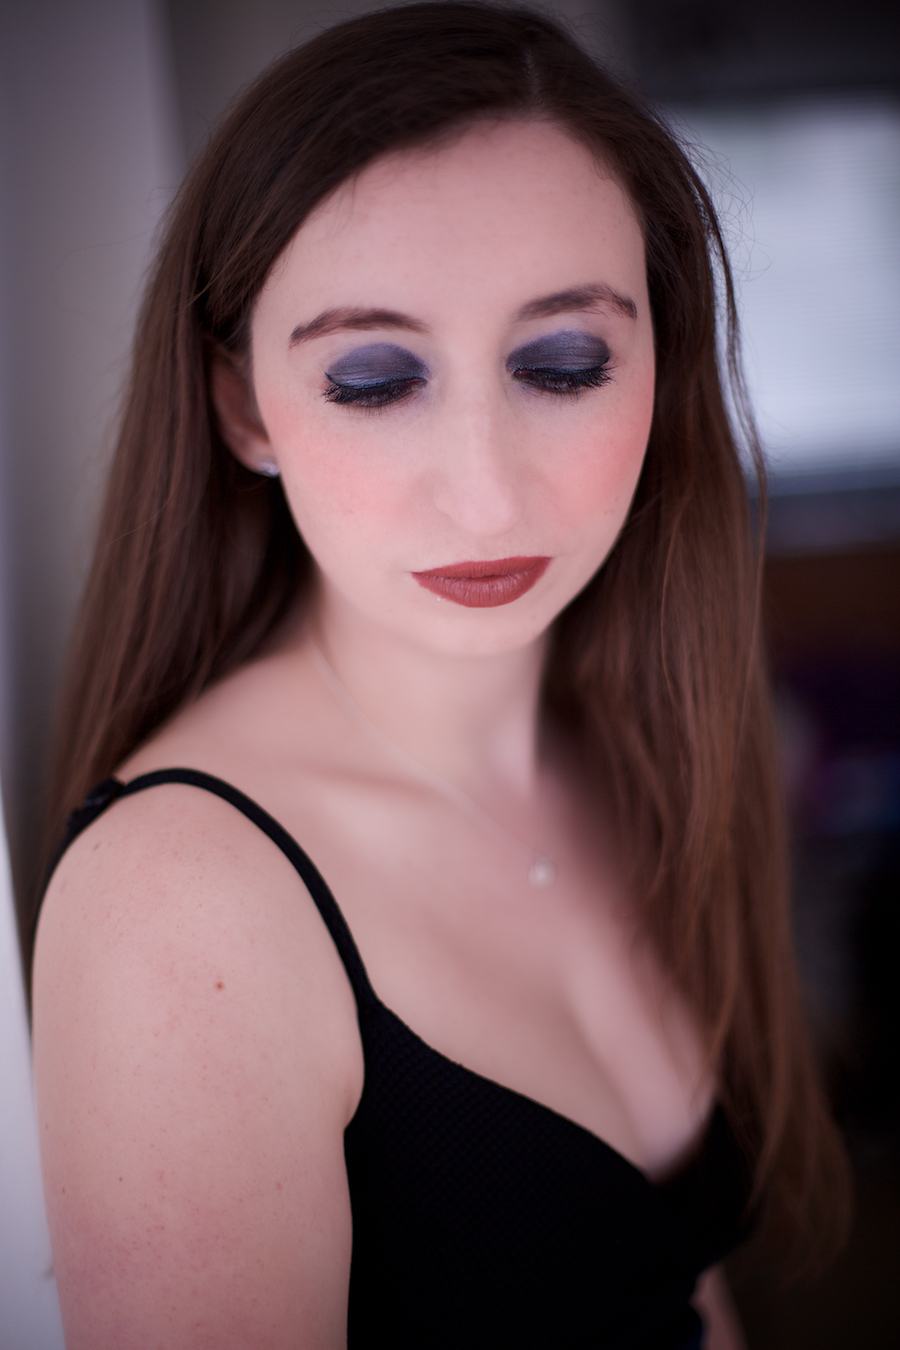 Photography by Straker, Model Emma Jayne, Makeup by Emma Jayne / Uploaded 14th April 2019 @ 03:58 PM